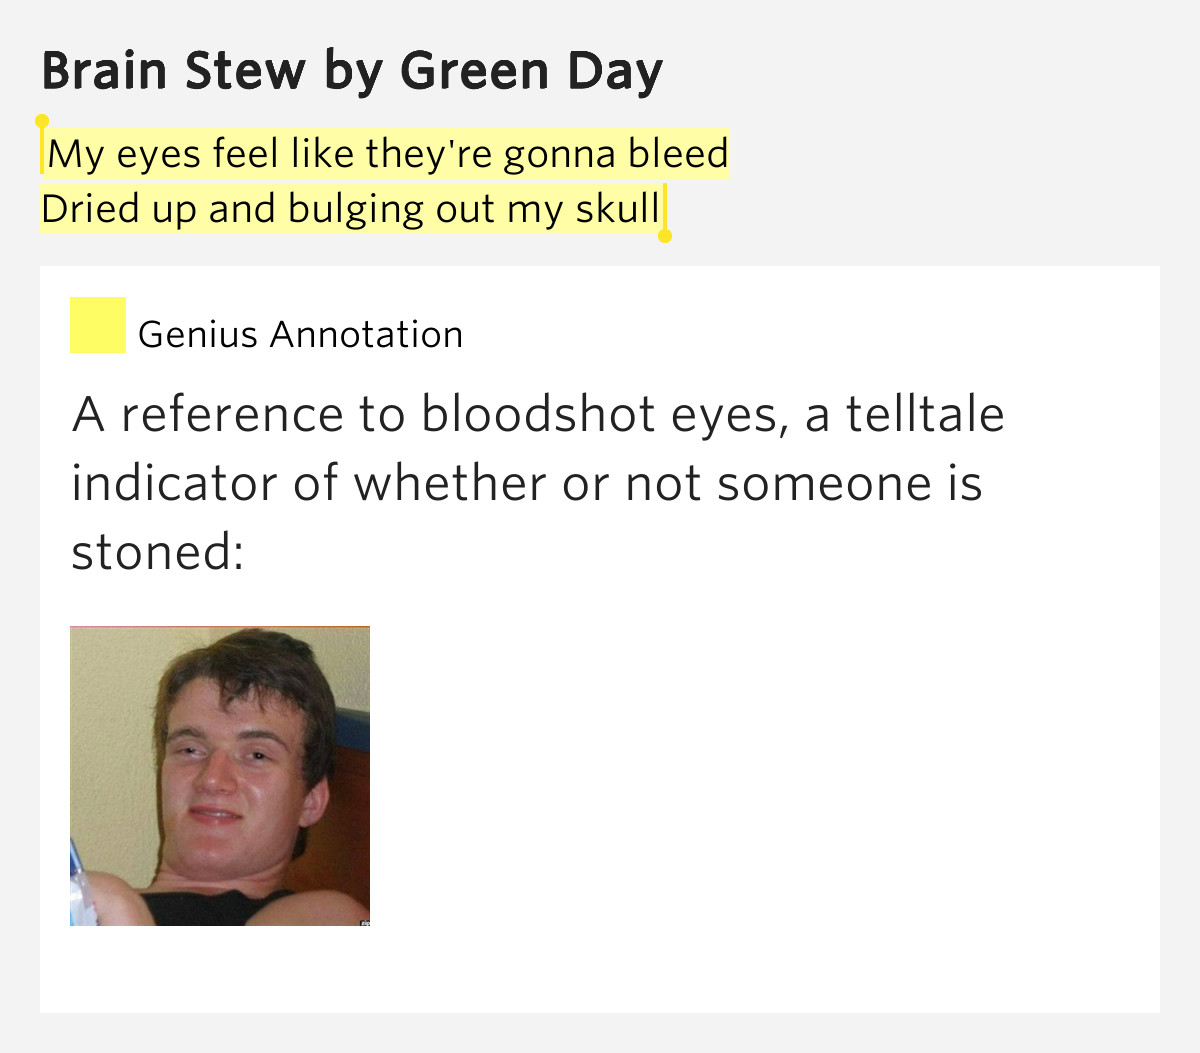 Brain Stew Lyrics  My eyes feel like they re gonna bleed Dried up and